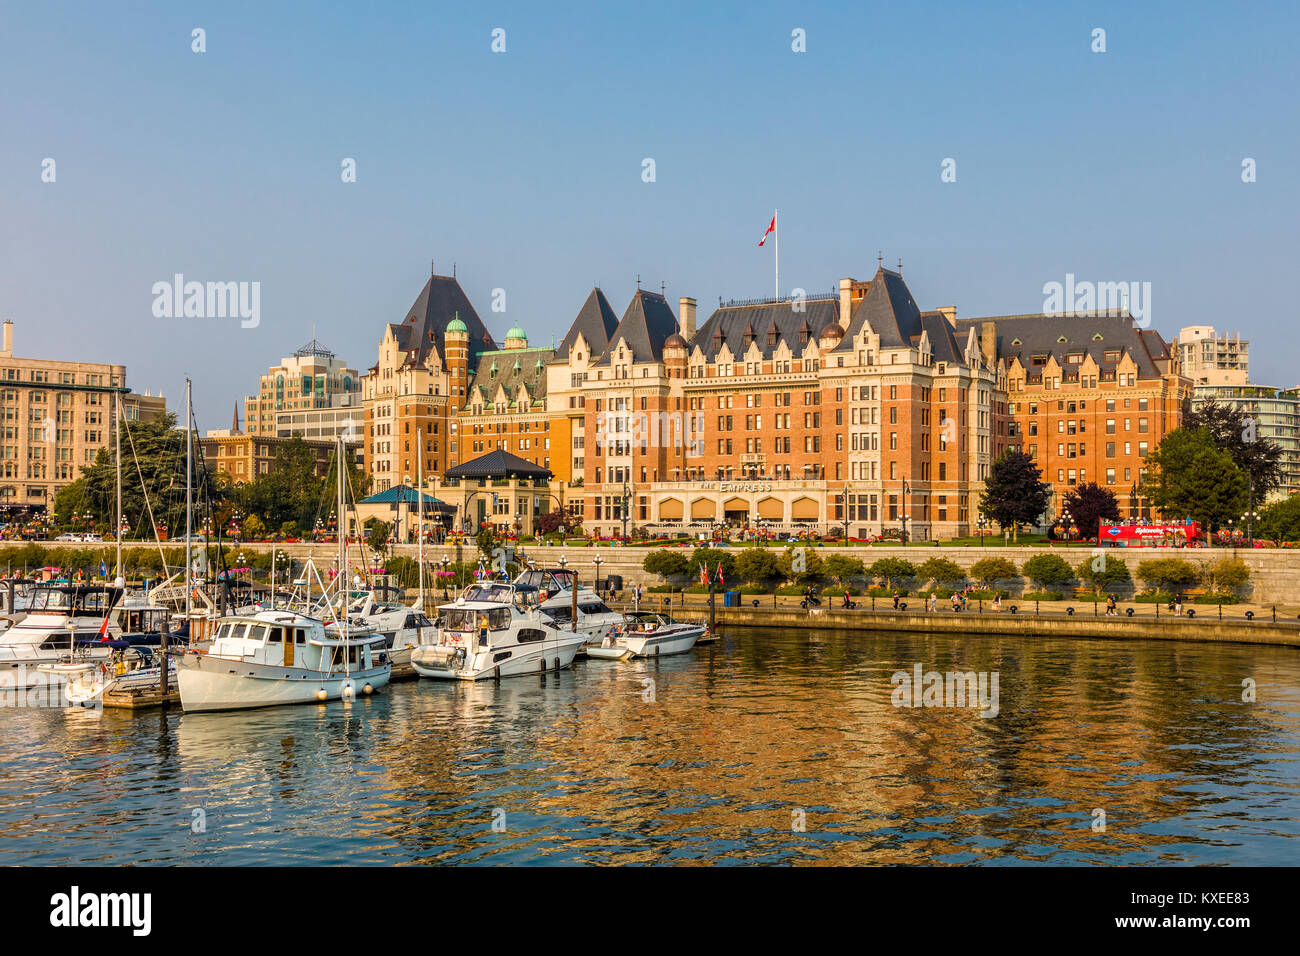 The Fairmont Empress Hotel in Victoria known as the Garden City on ...